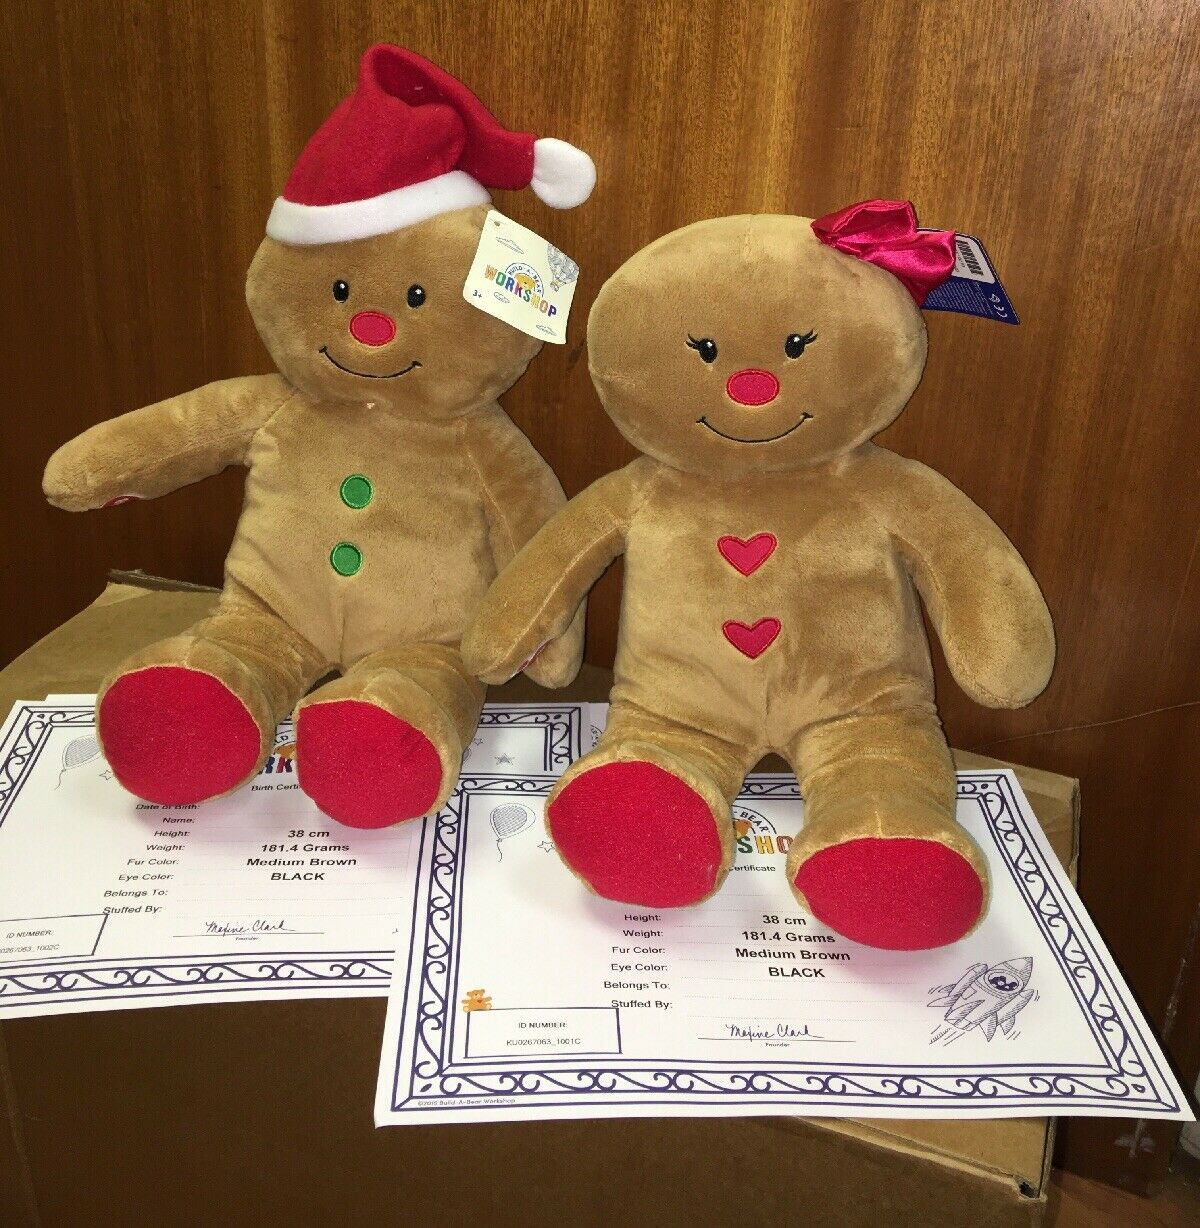 BUILD A BEAR FACTORY XMAS GINGERBREAD BOY & GIRL WITH TAGS